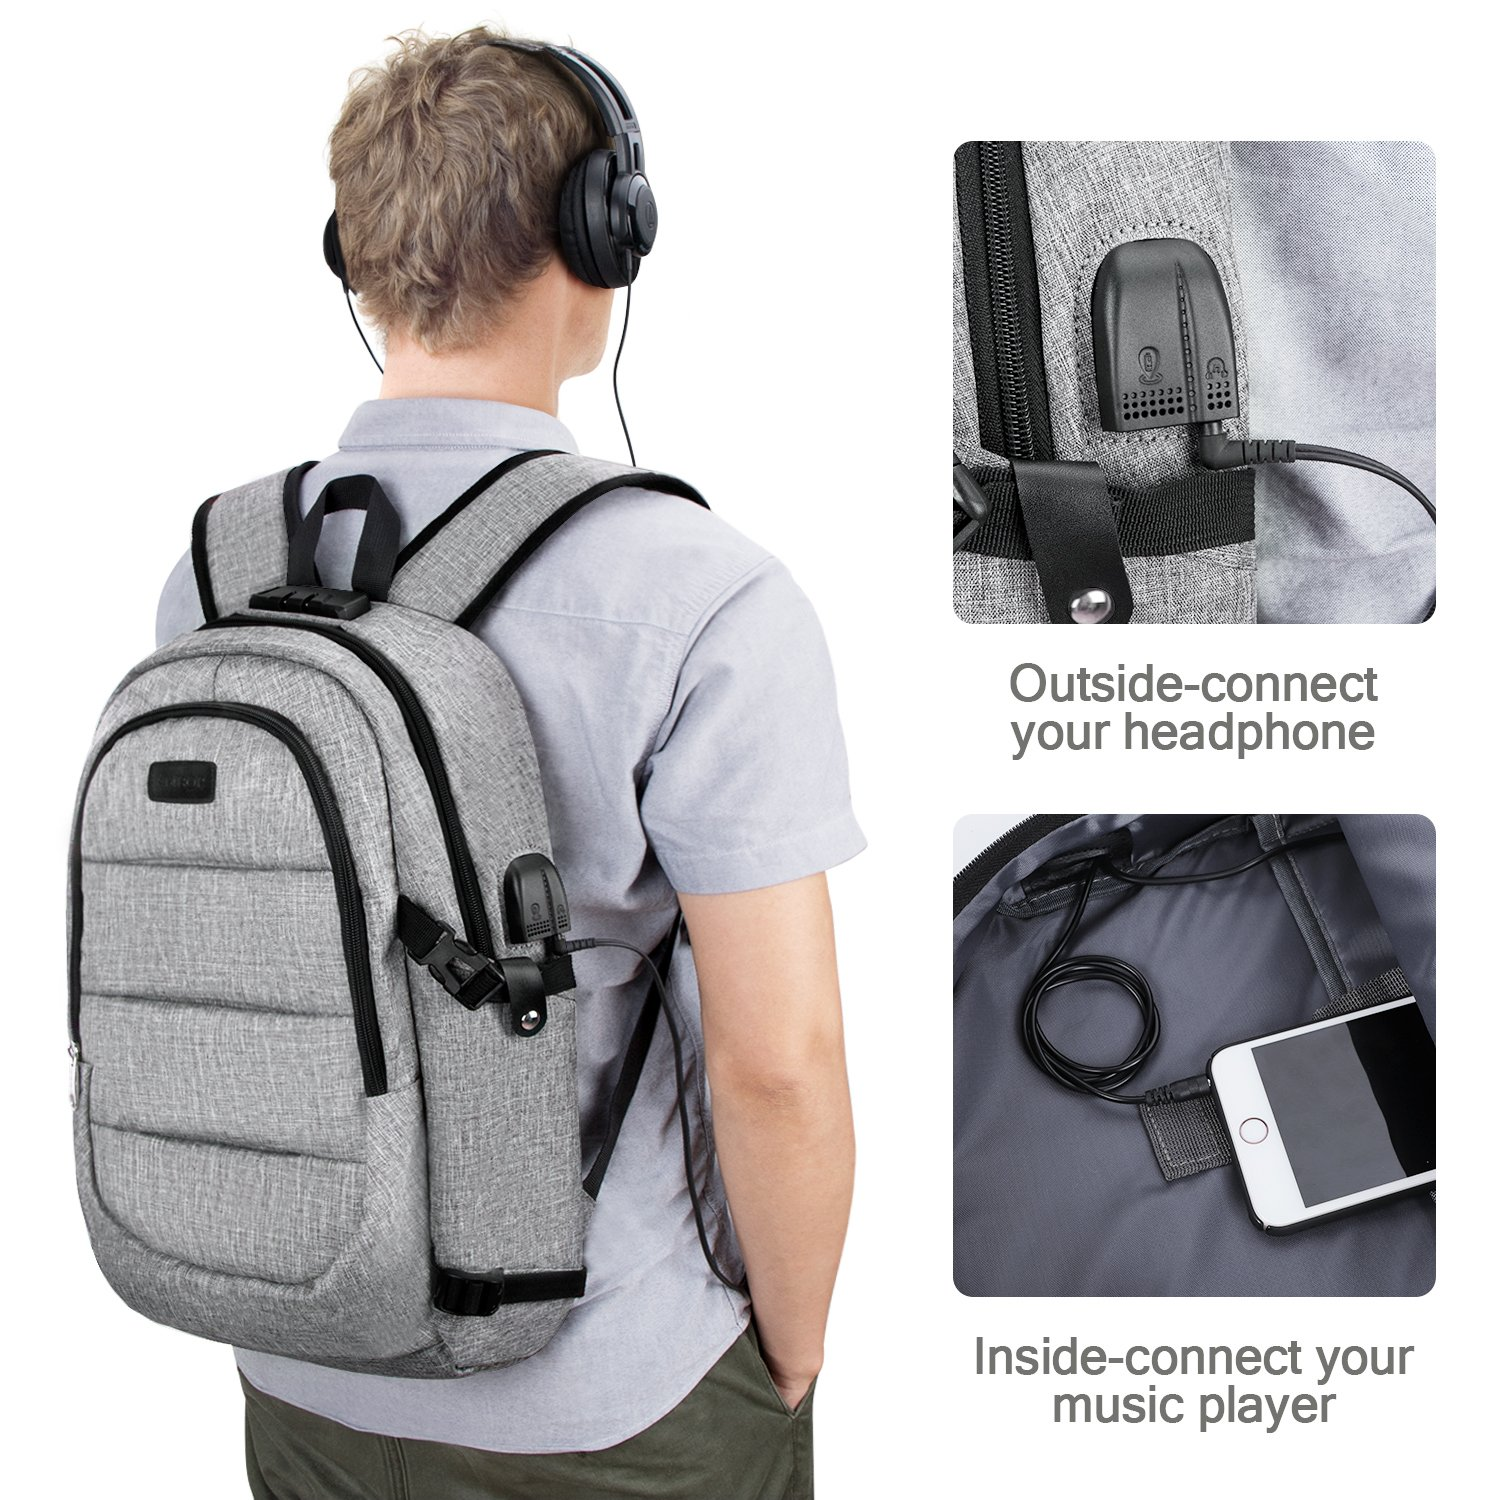 Travel Laptop Backpack,AMBOR Anti-Theft Business Laptop Backpack with USB Charging Port & Headphone Interface, Slim Durable College School Computer Bag for Men Women Fits 15.6 Inch Laptop and Notebook by AMBOR (Image #6)